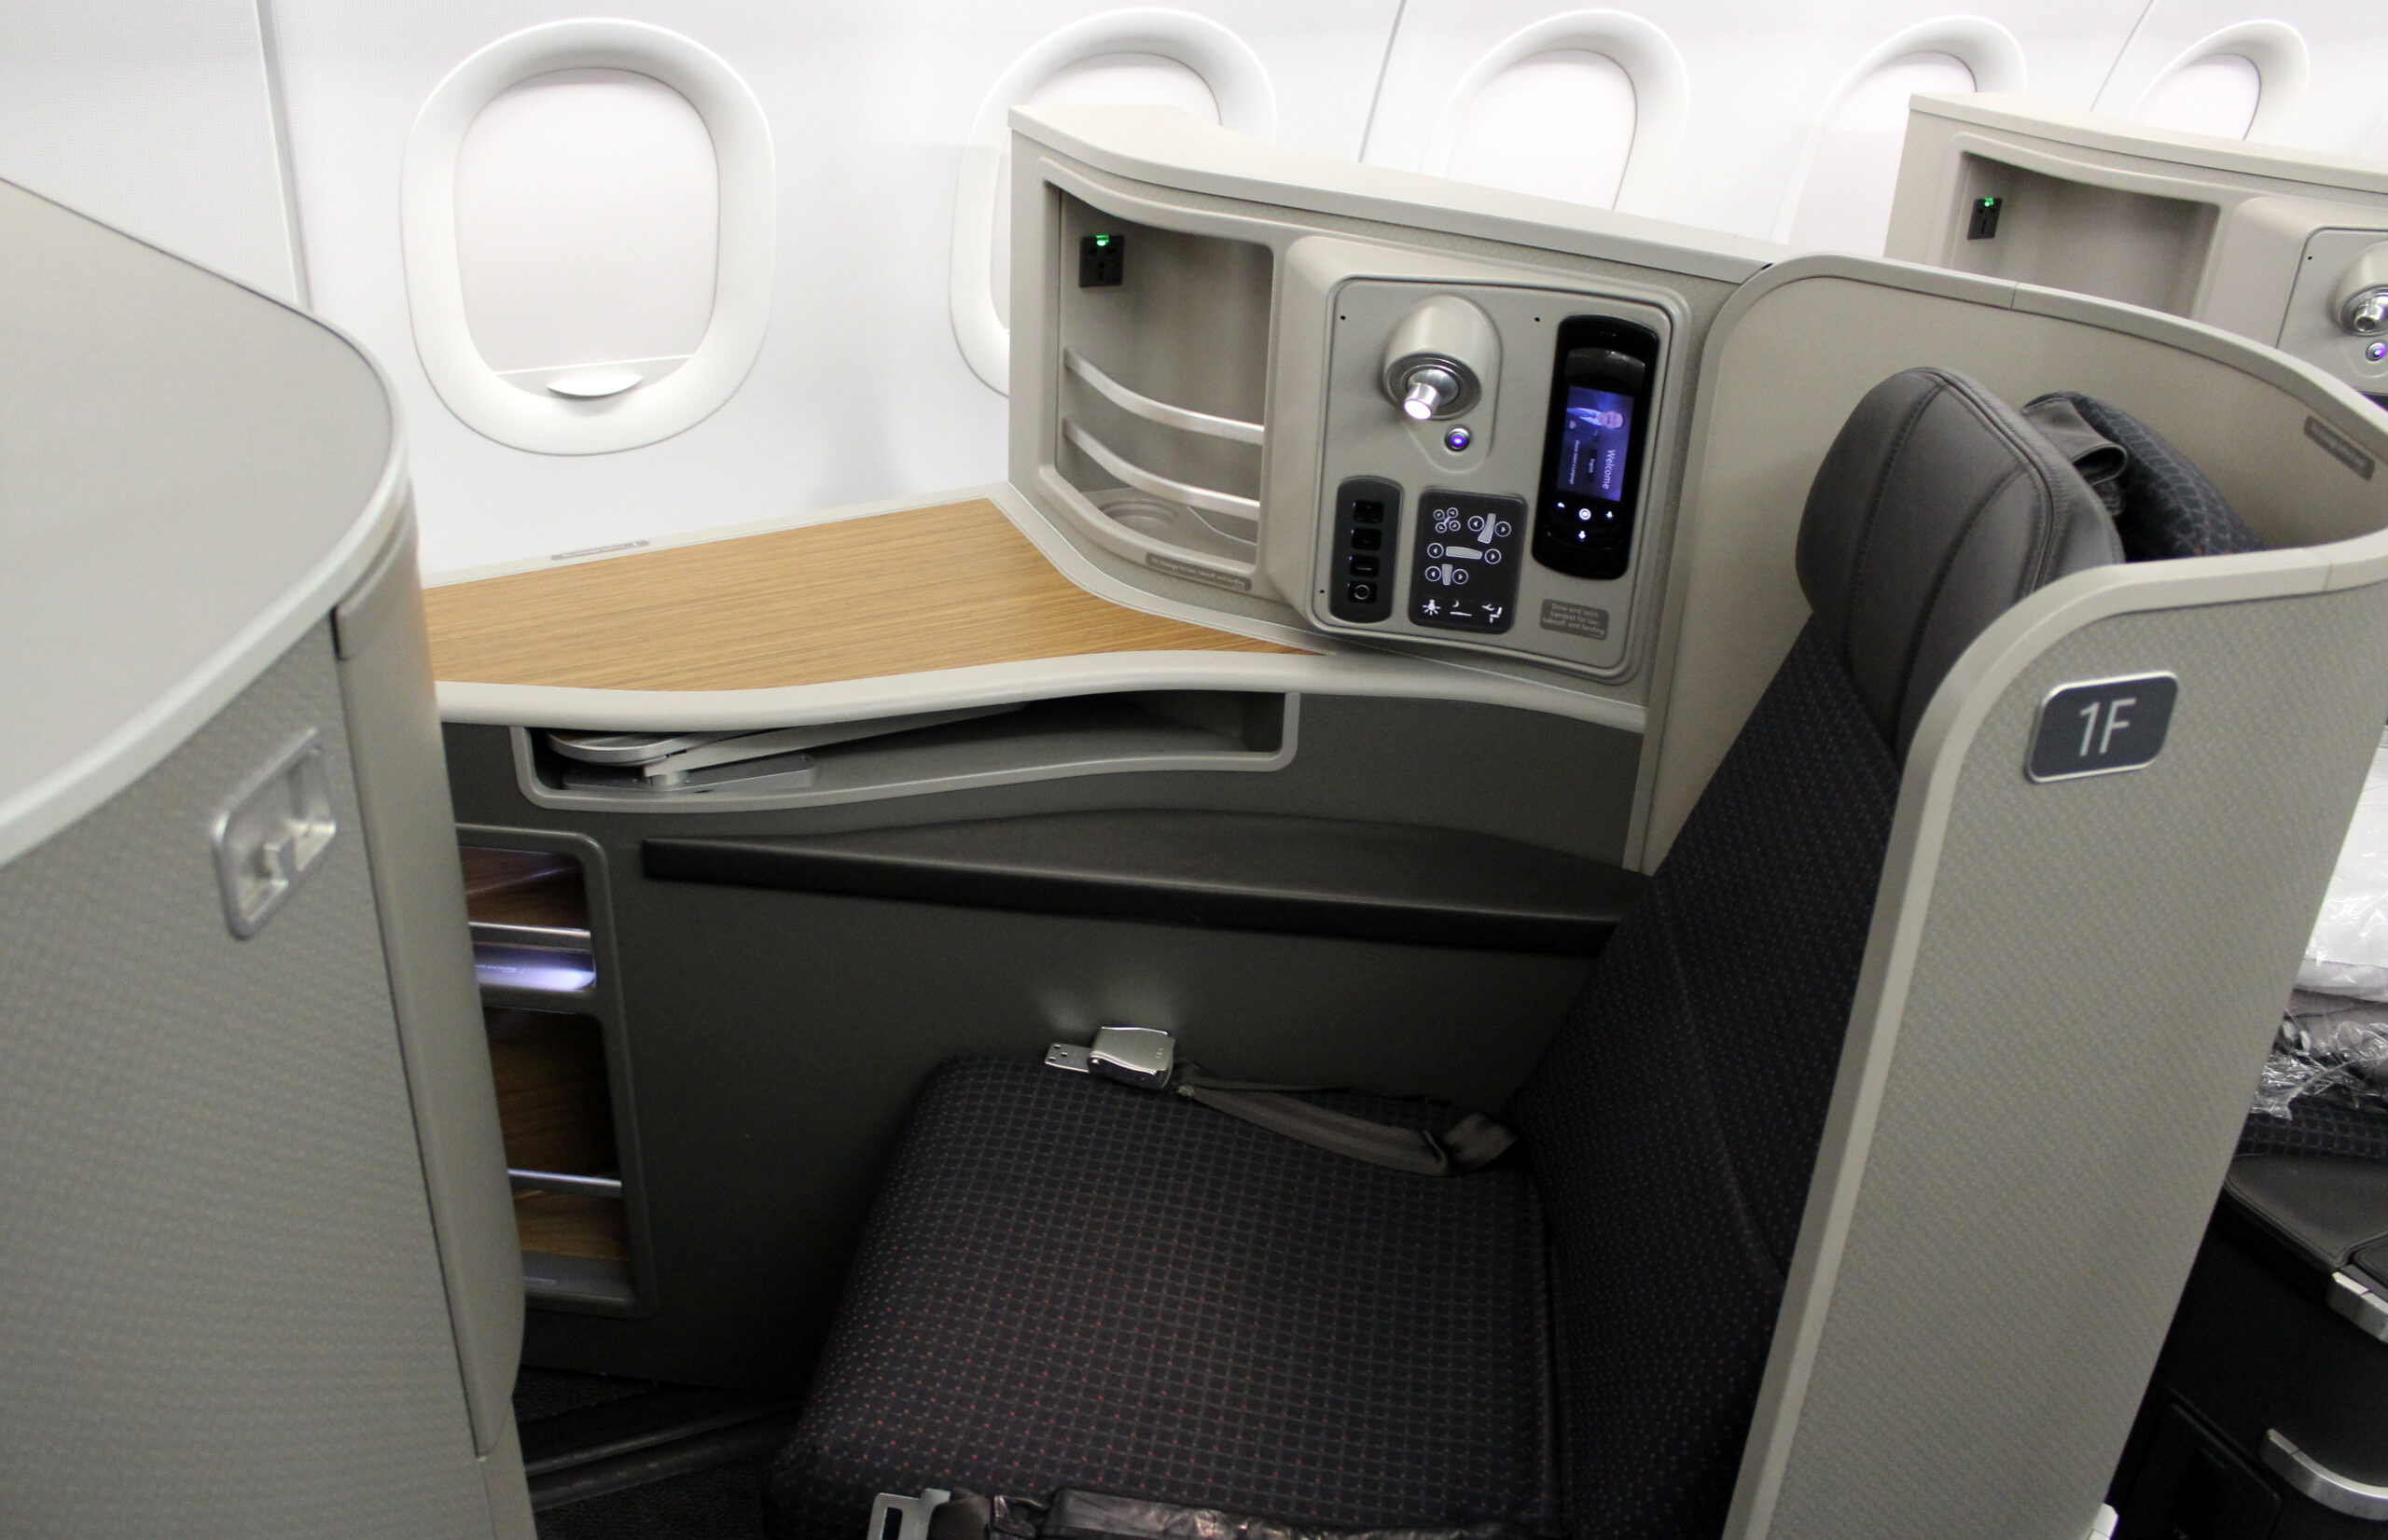 LOS ANGELES TO NEW YORK FLIGHT, USA – AUGUST 10 2015: American Airlines flight AA2 prepares to welcome first class passengers in its exclusive Flagship First Airbus A321T cabin.